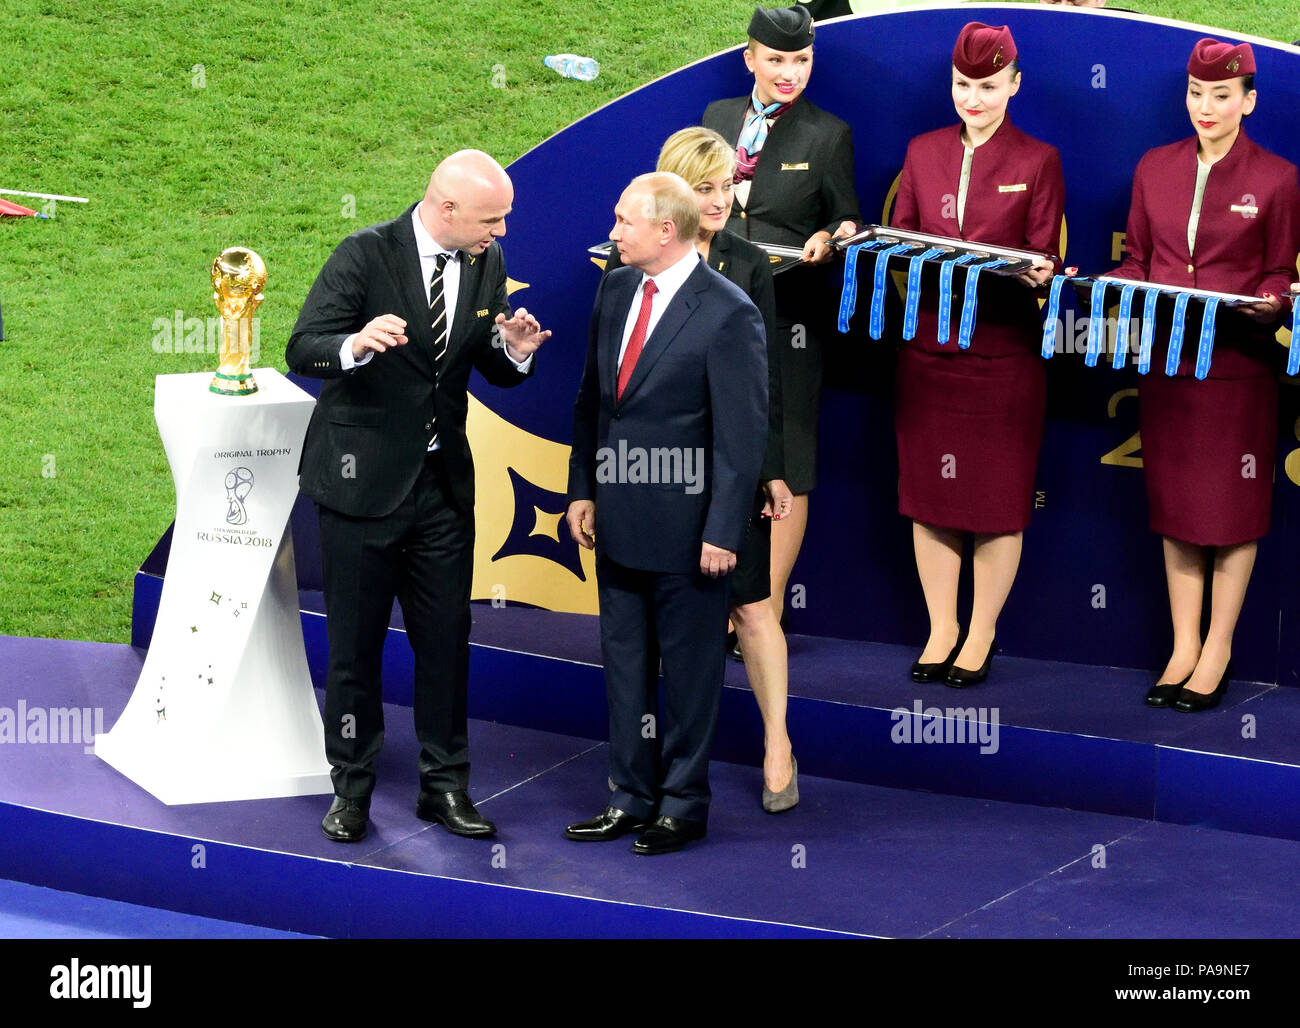 Moscow, Russia - July 15, 2018. Russian President Vladimir Putin standing by FIFA President Gianni Infantino before World Cup trophy presentation afte - Stock Image